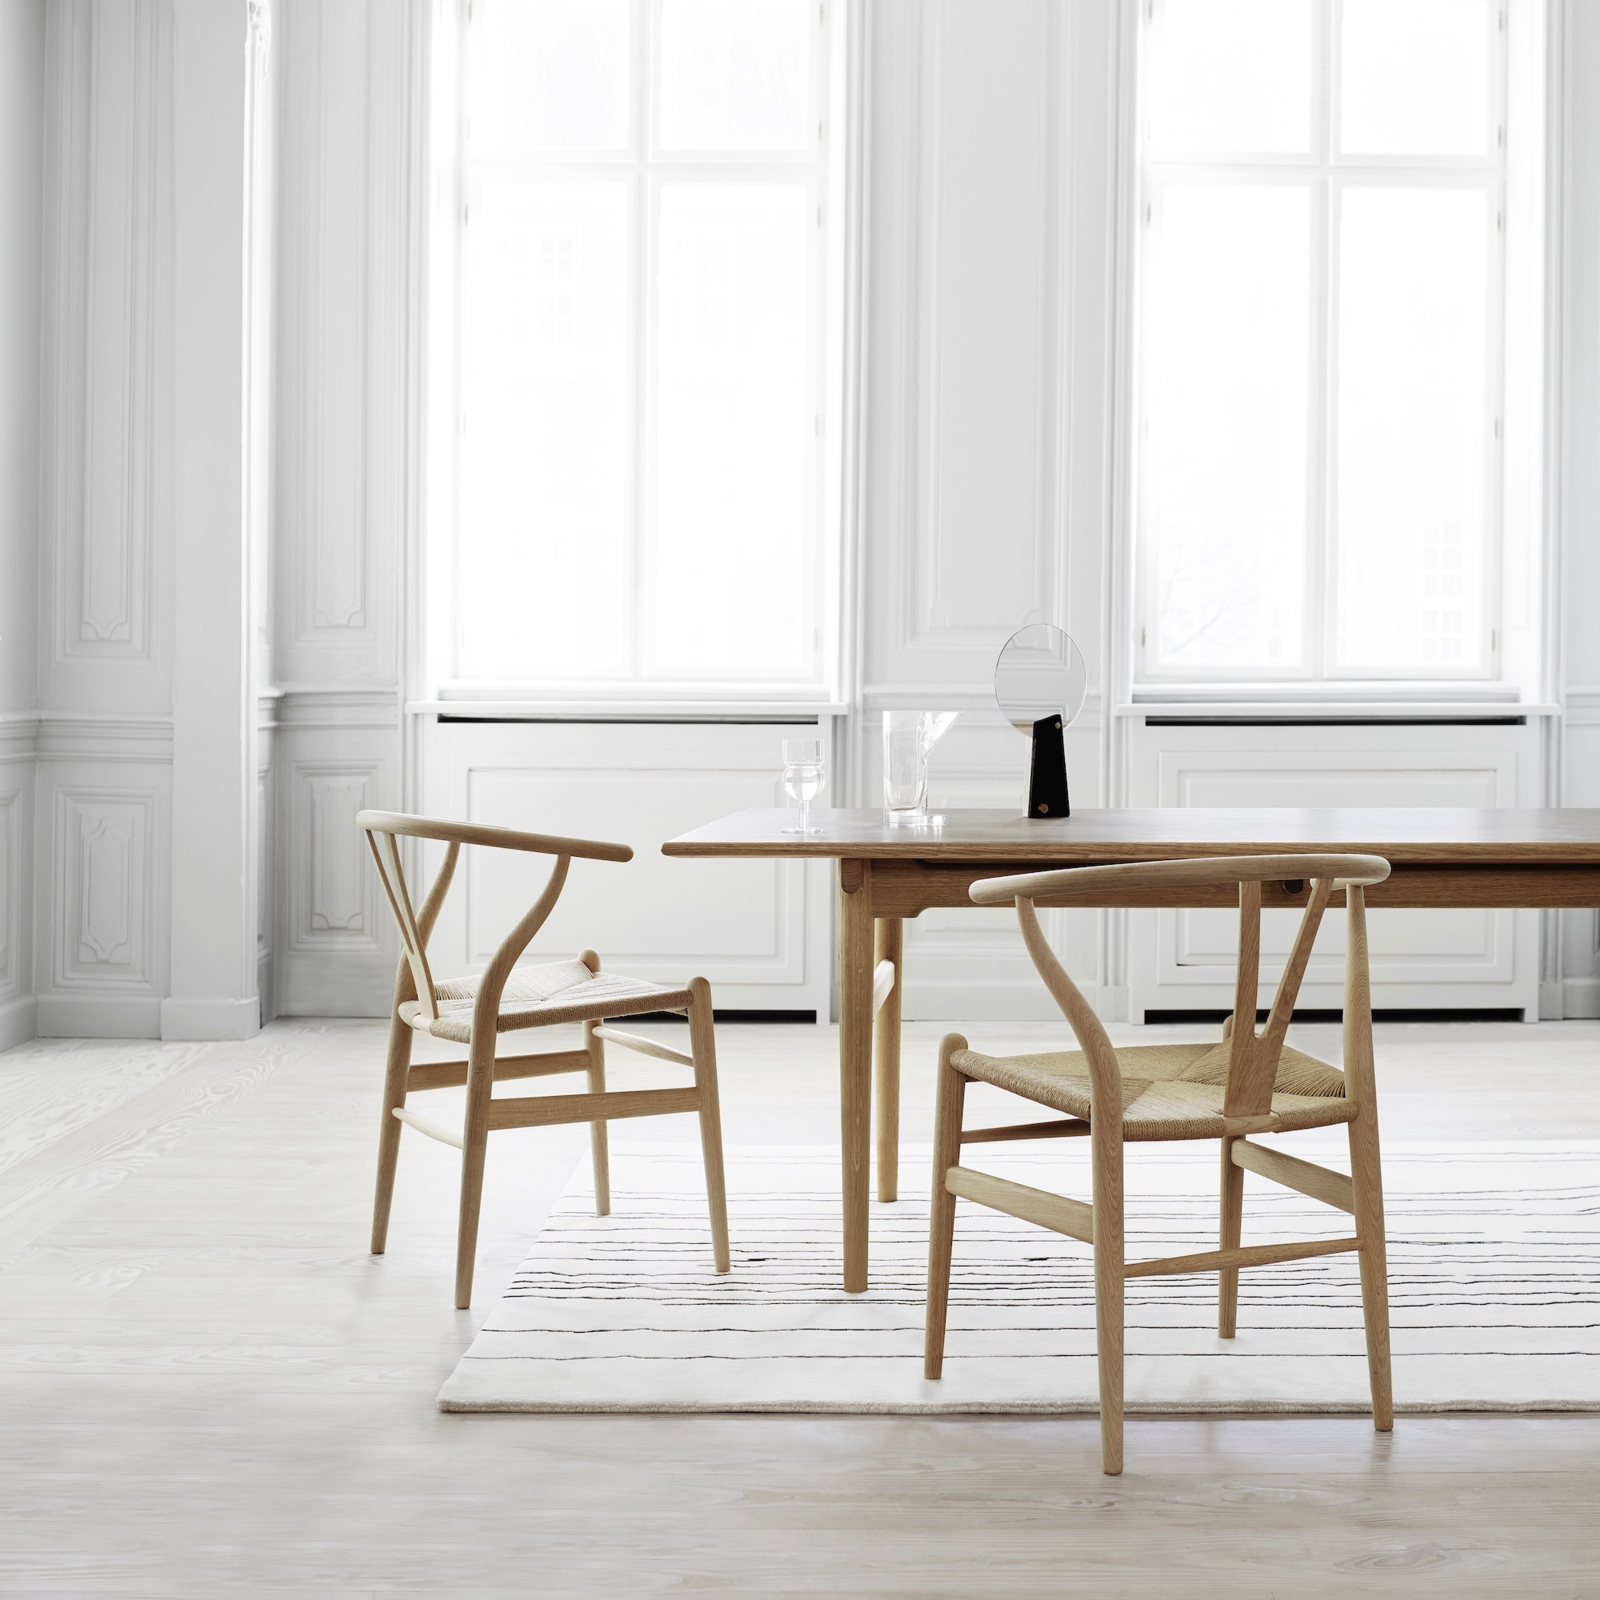 Wishbone Chair by Hans Wegner   Best Photos from Interiors